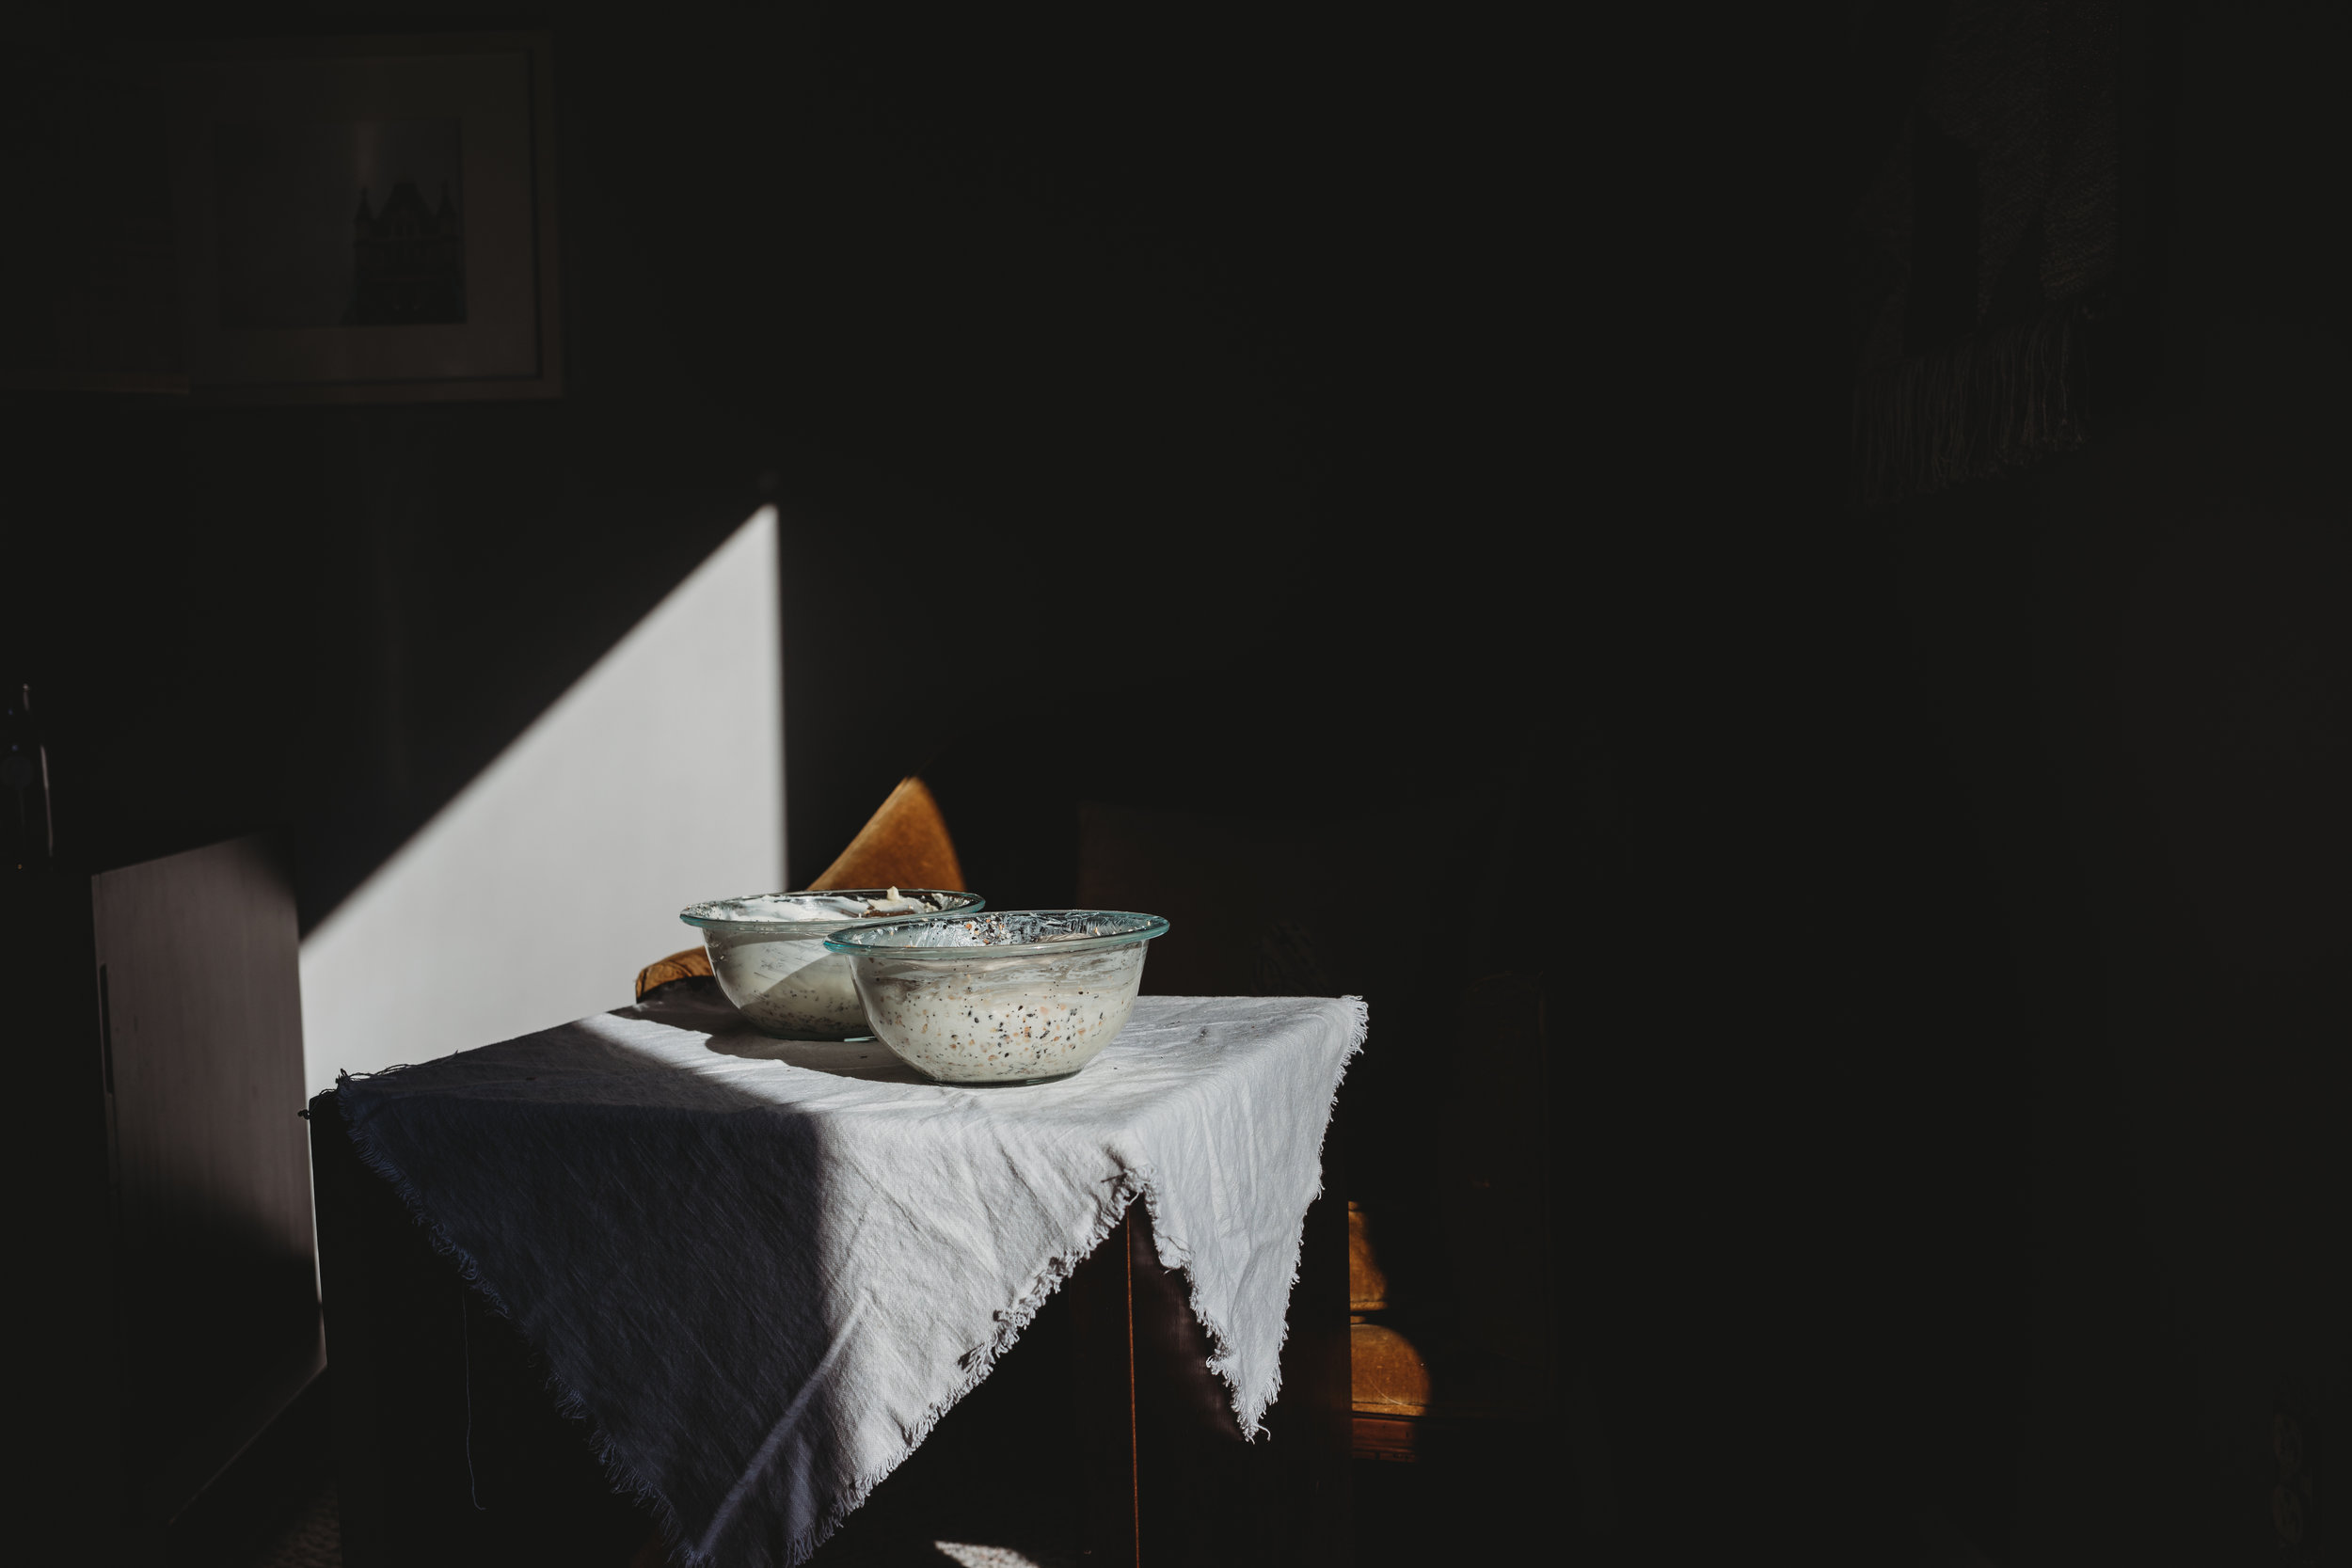 Experimenting with bread baking and light | Boston family photographer | still life